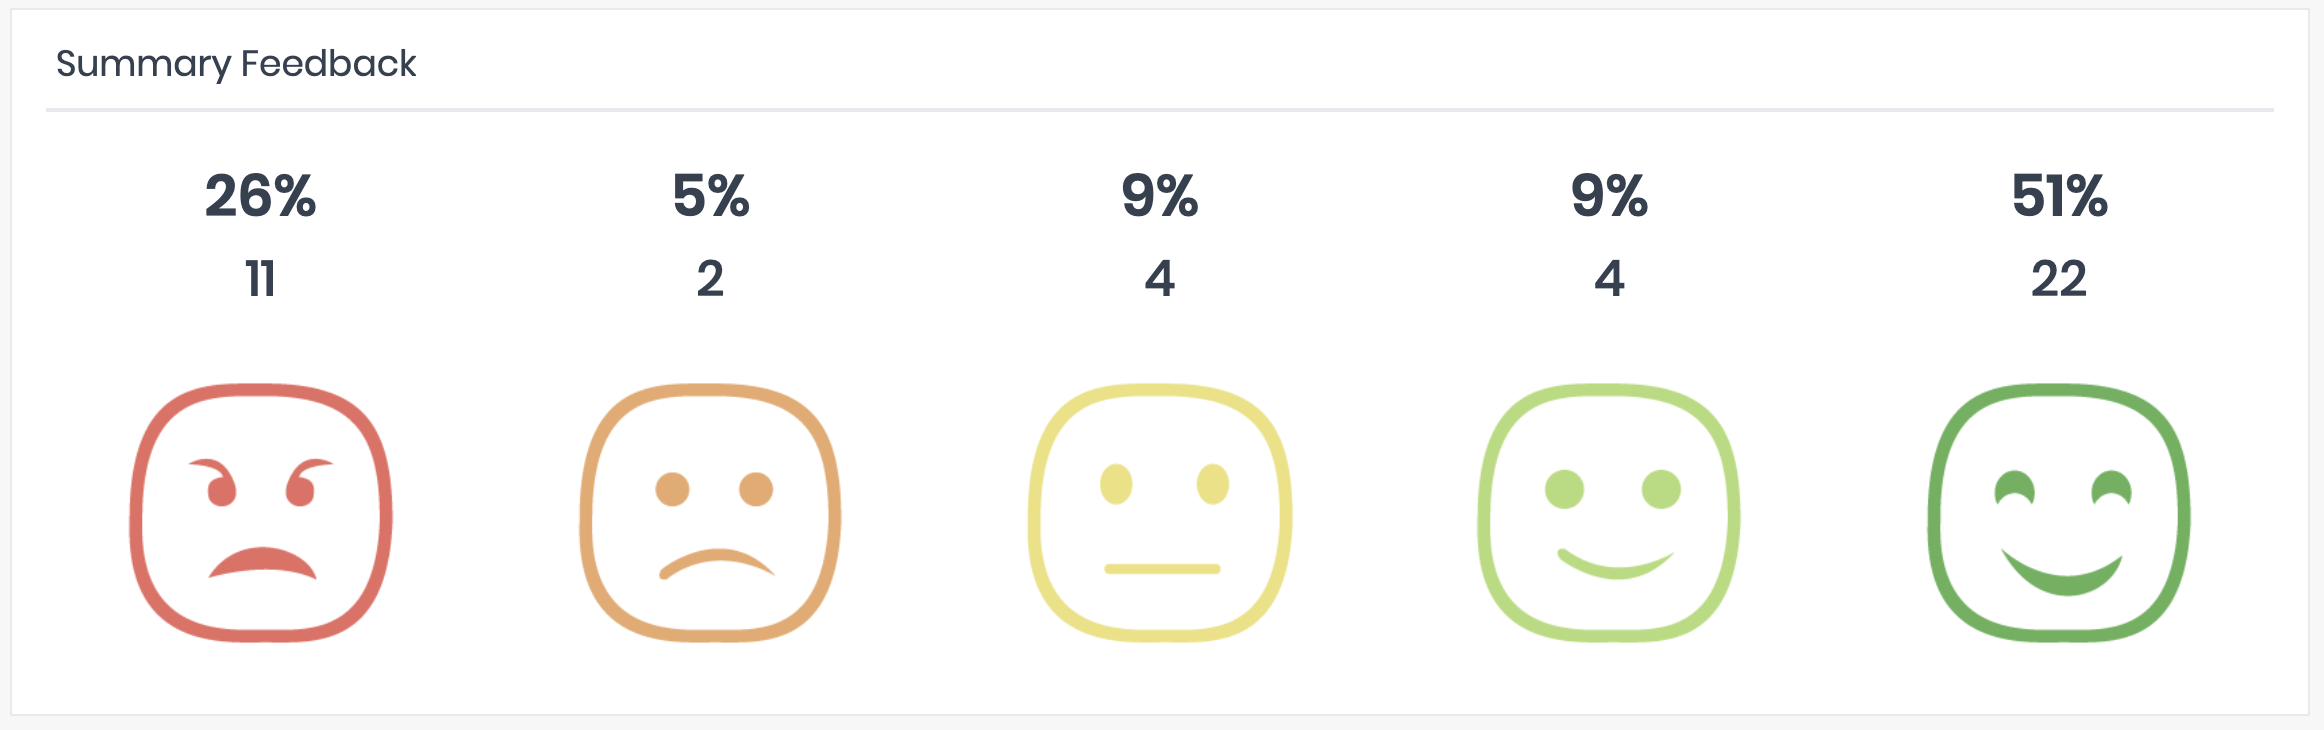 Emoji Survey Feedback